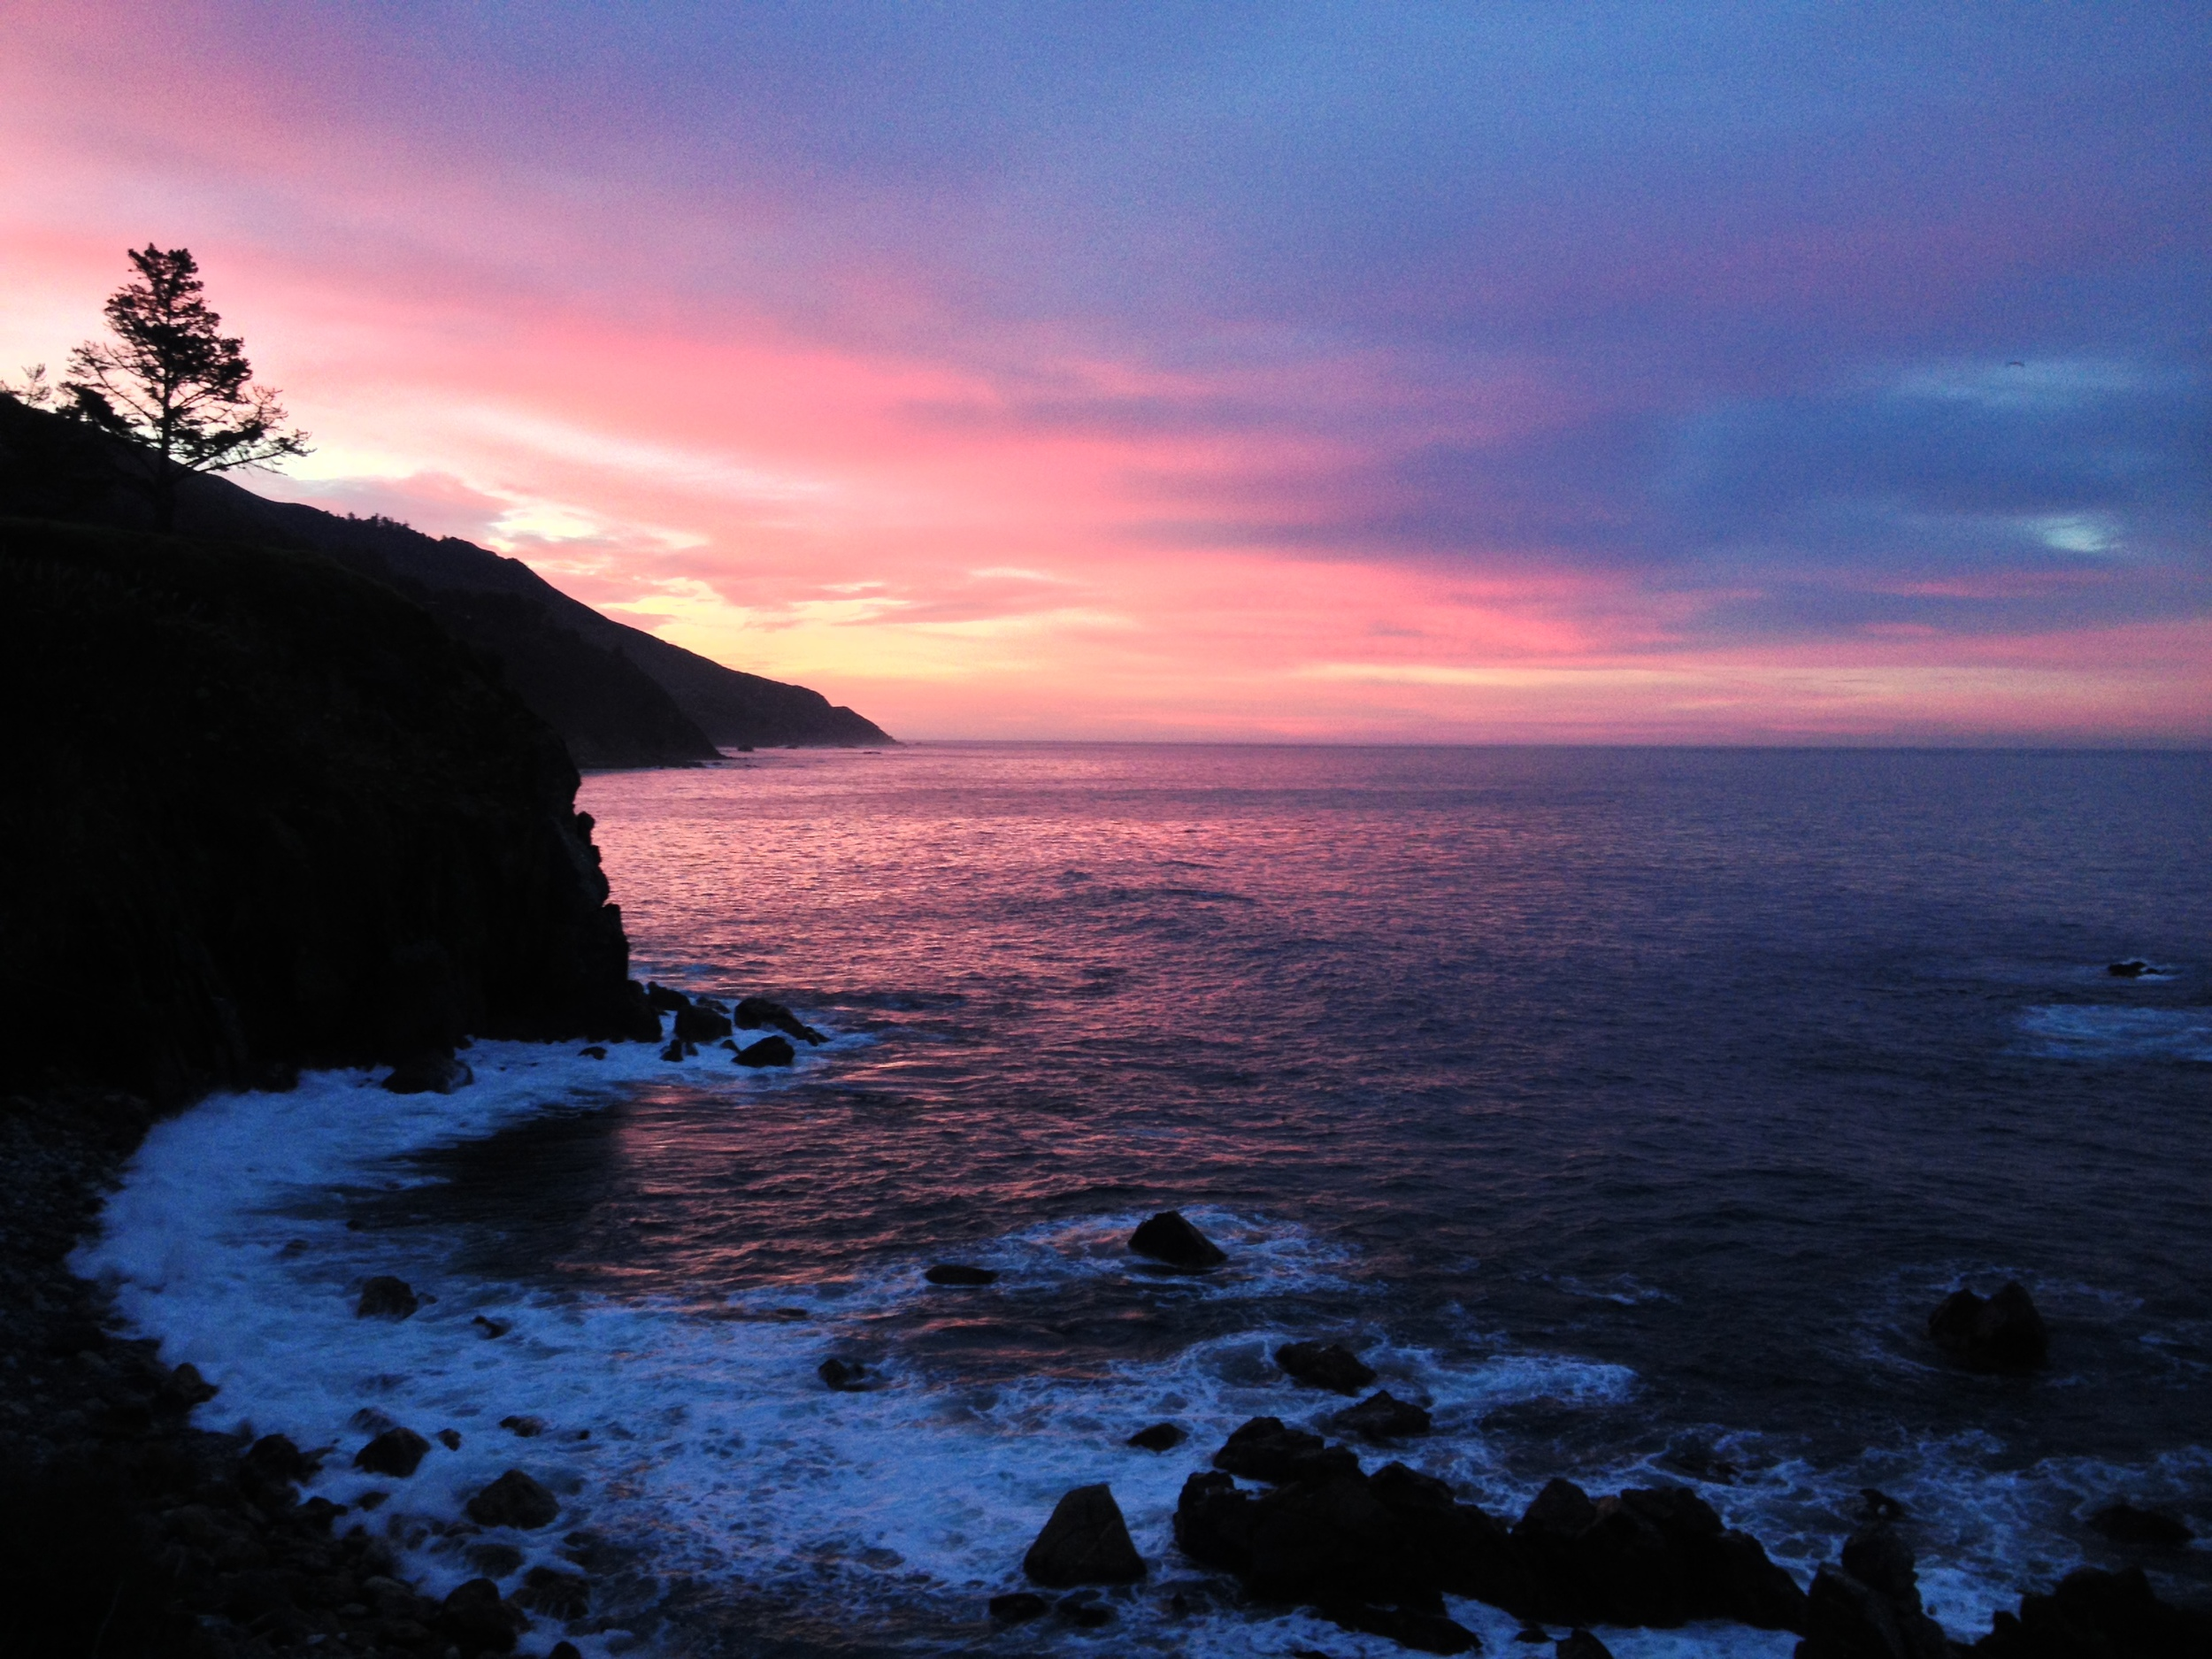 Sunrise from the Murphy House at Esalen on January 22, 2015 during my last retreat with Tias Little & Henry Shuckman.